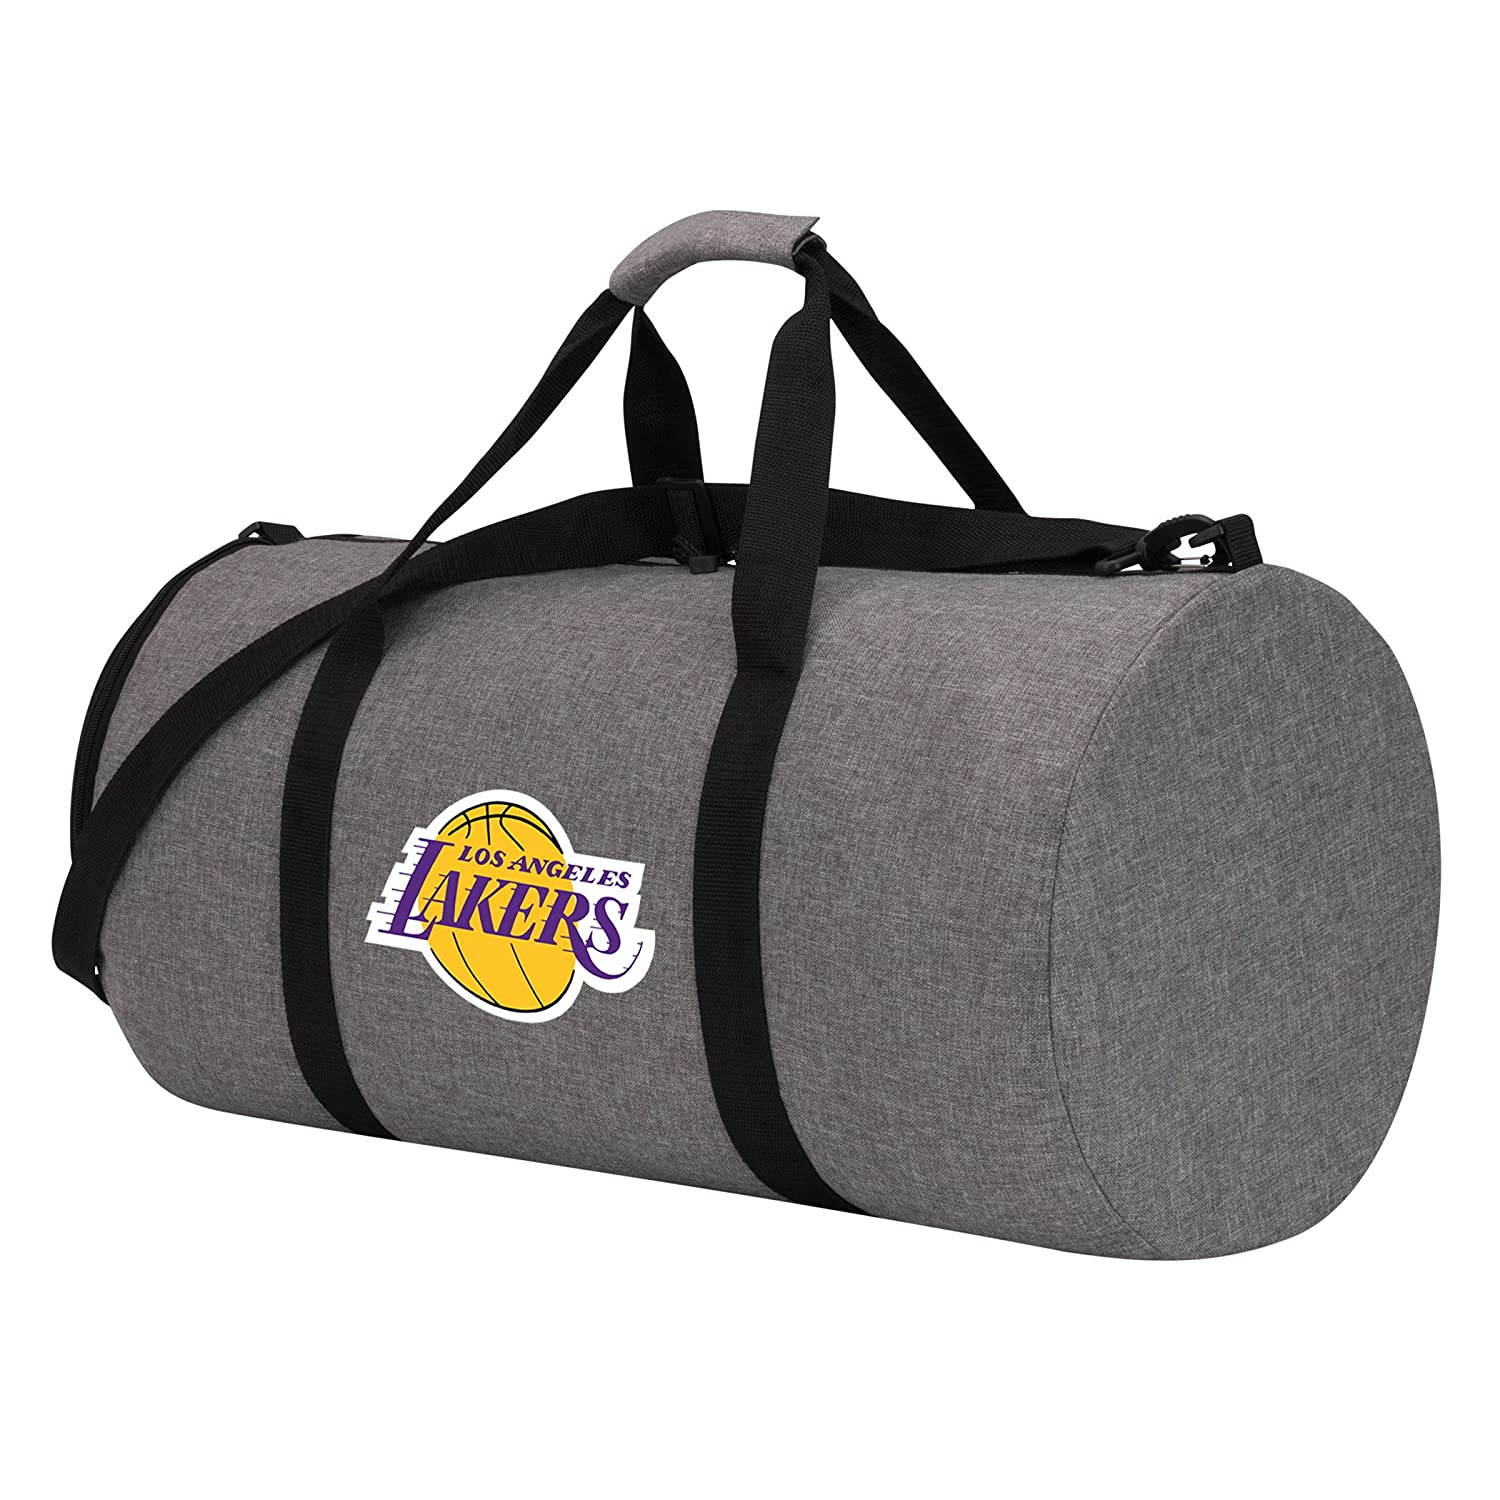 24 x 12 x 12 Officially Licensed NBA Wingman Duffle Bag Gray